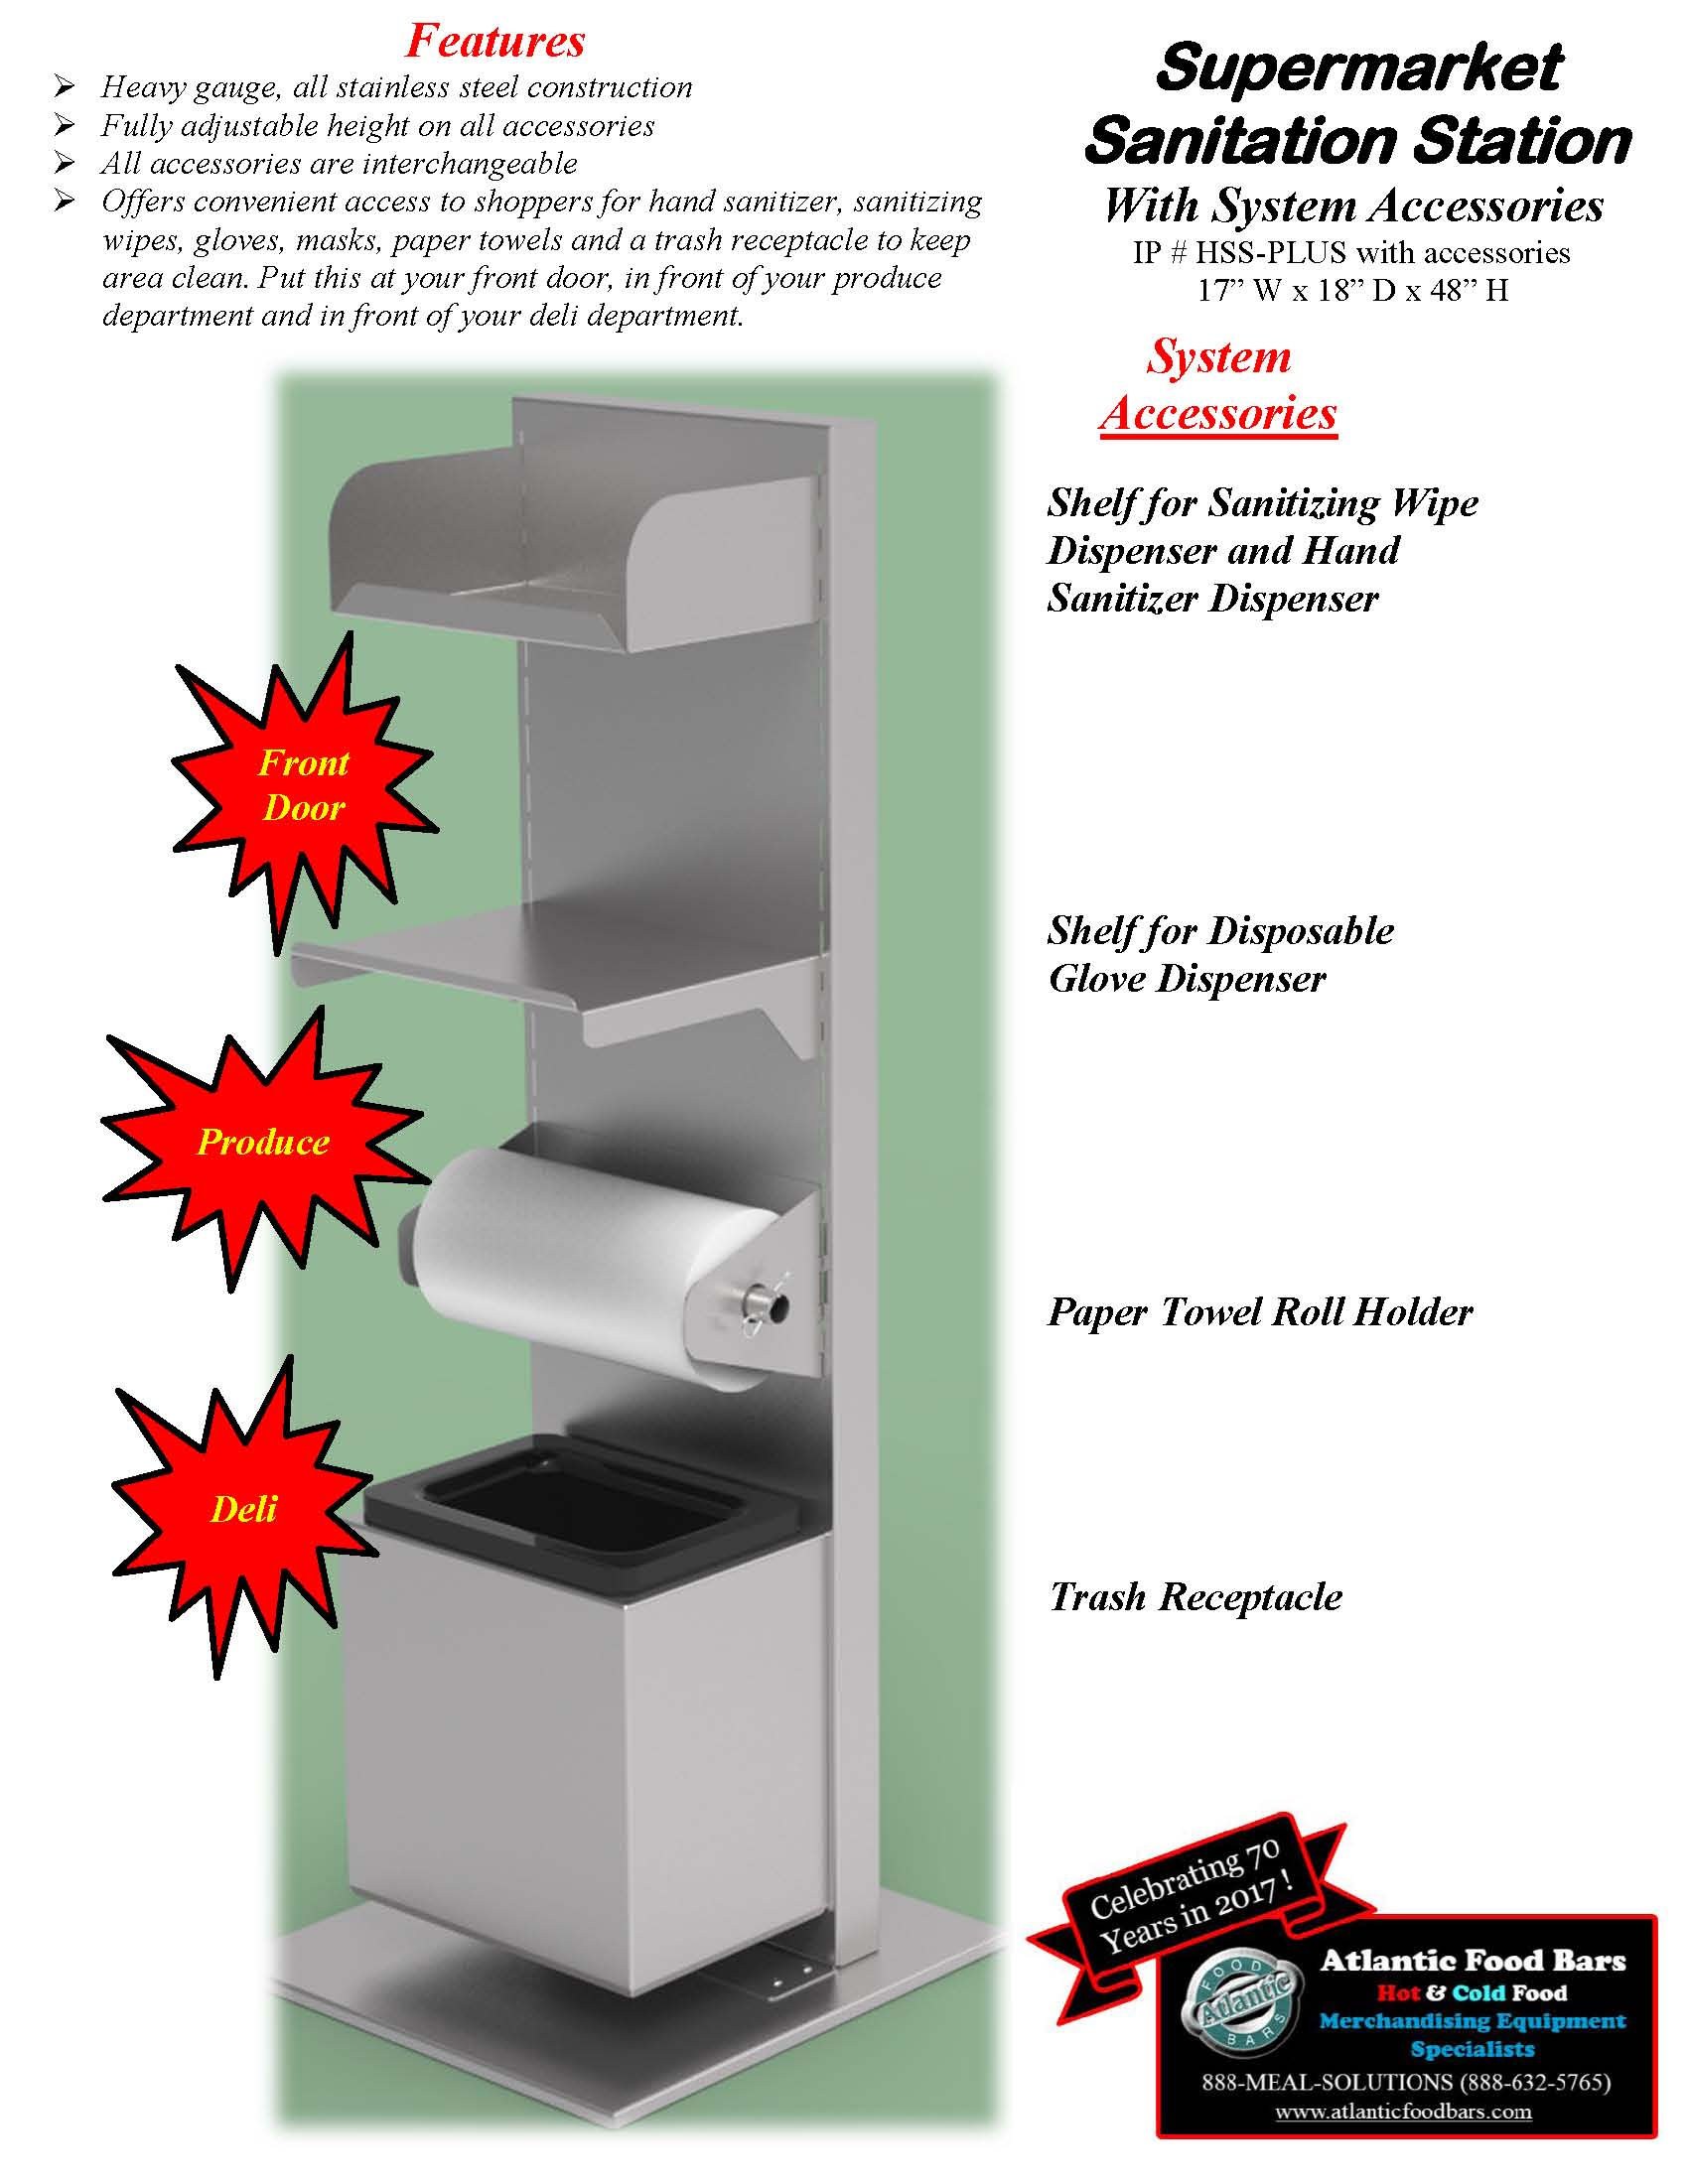 Atlantic Food Bars - Supermarket Sanitation Station - HSS-Plus with Accessories cut sheet 6-10-20_Page_2